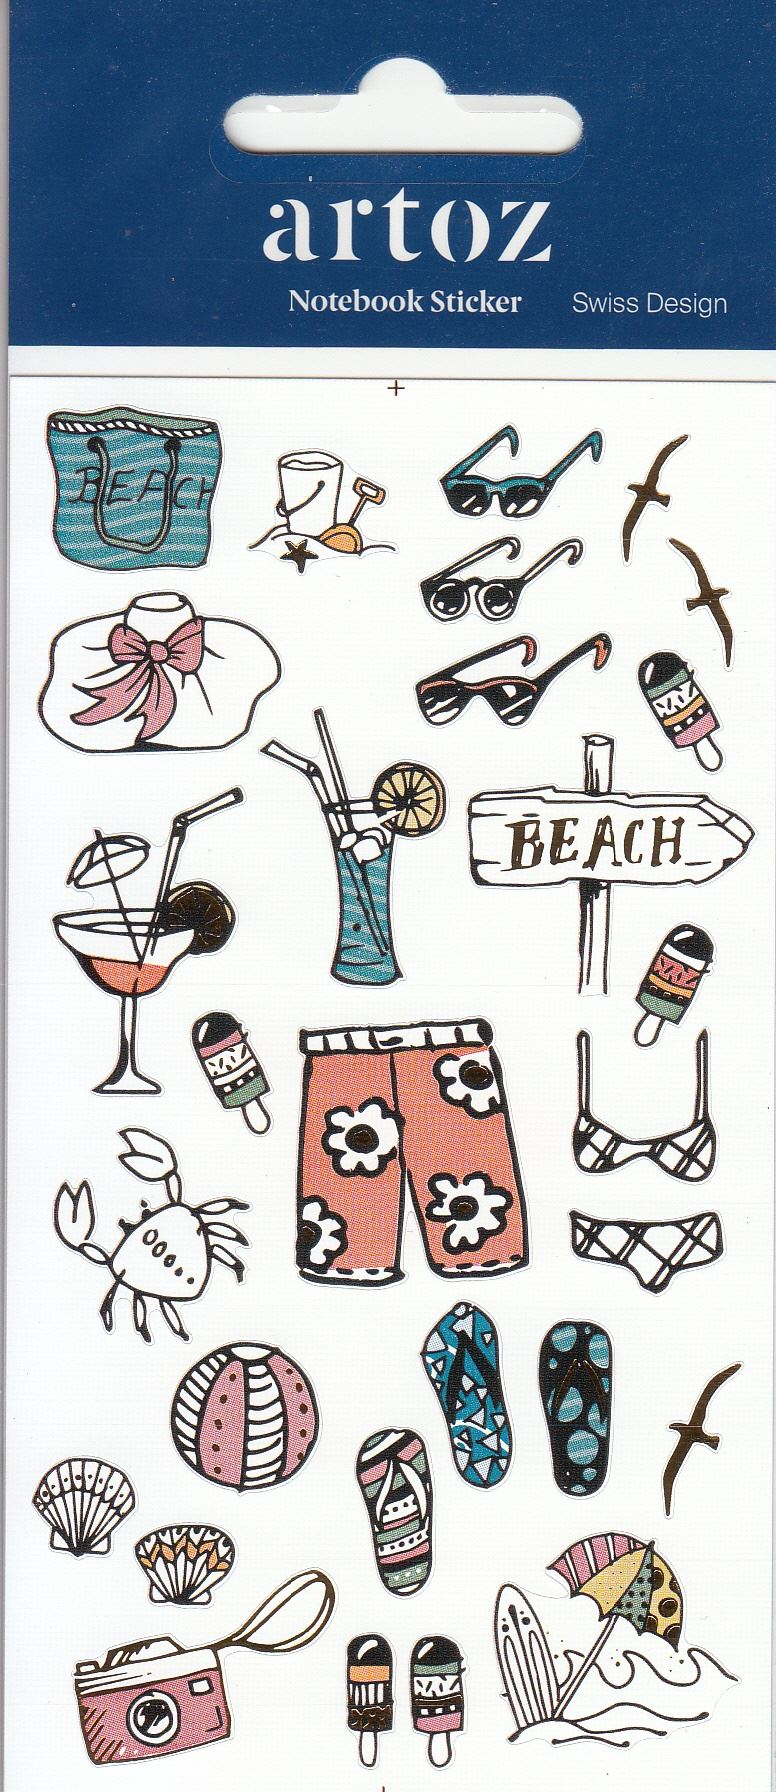 Summer Holiday Notebook Journal StickersSelf AdhesiveLaser Cut Stickers